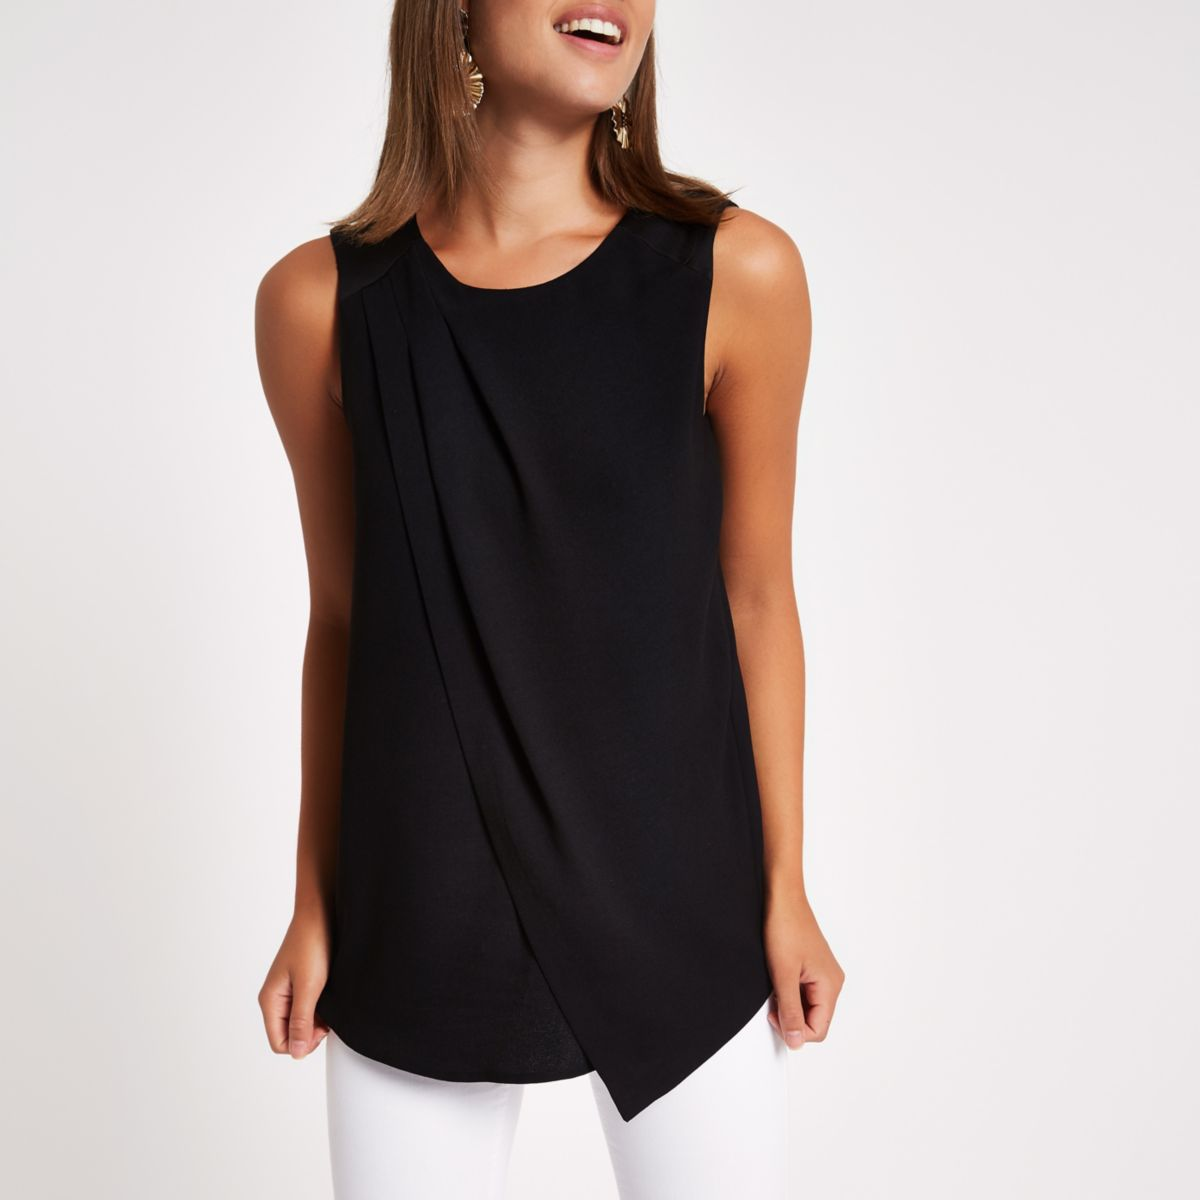 Black sleeveless wrap top